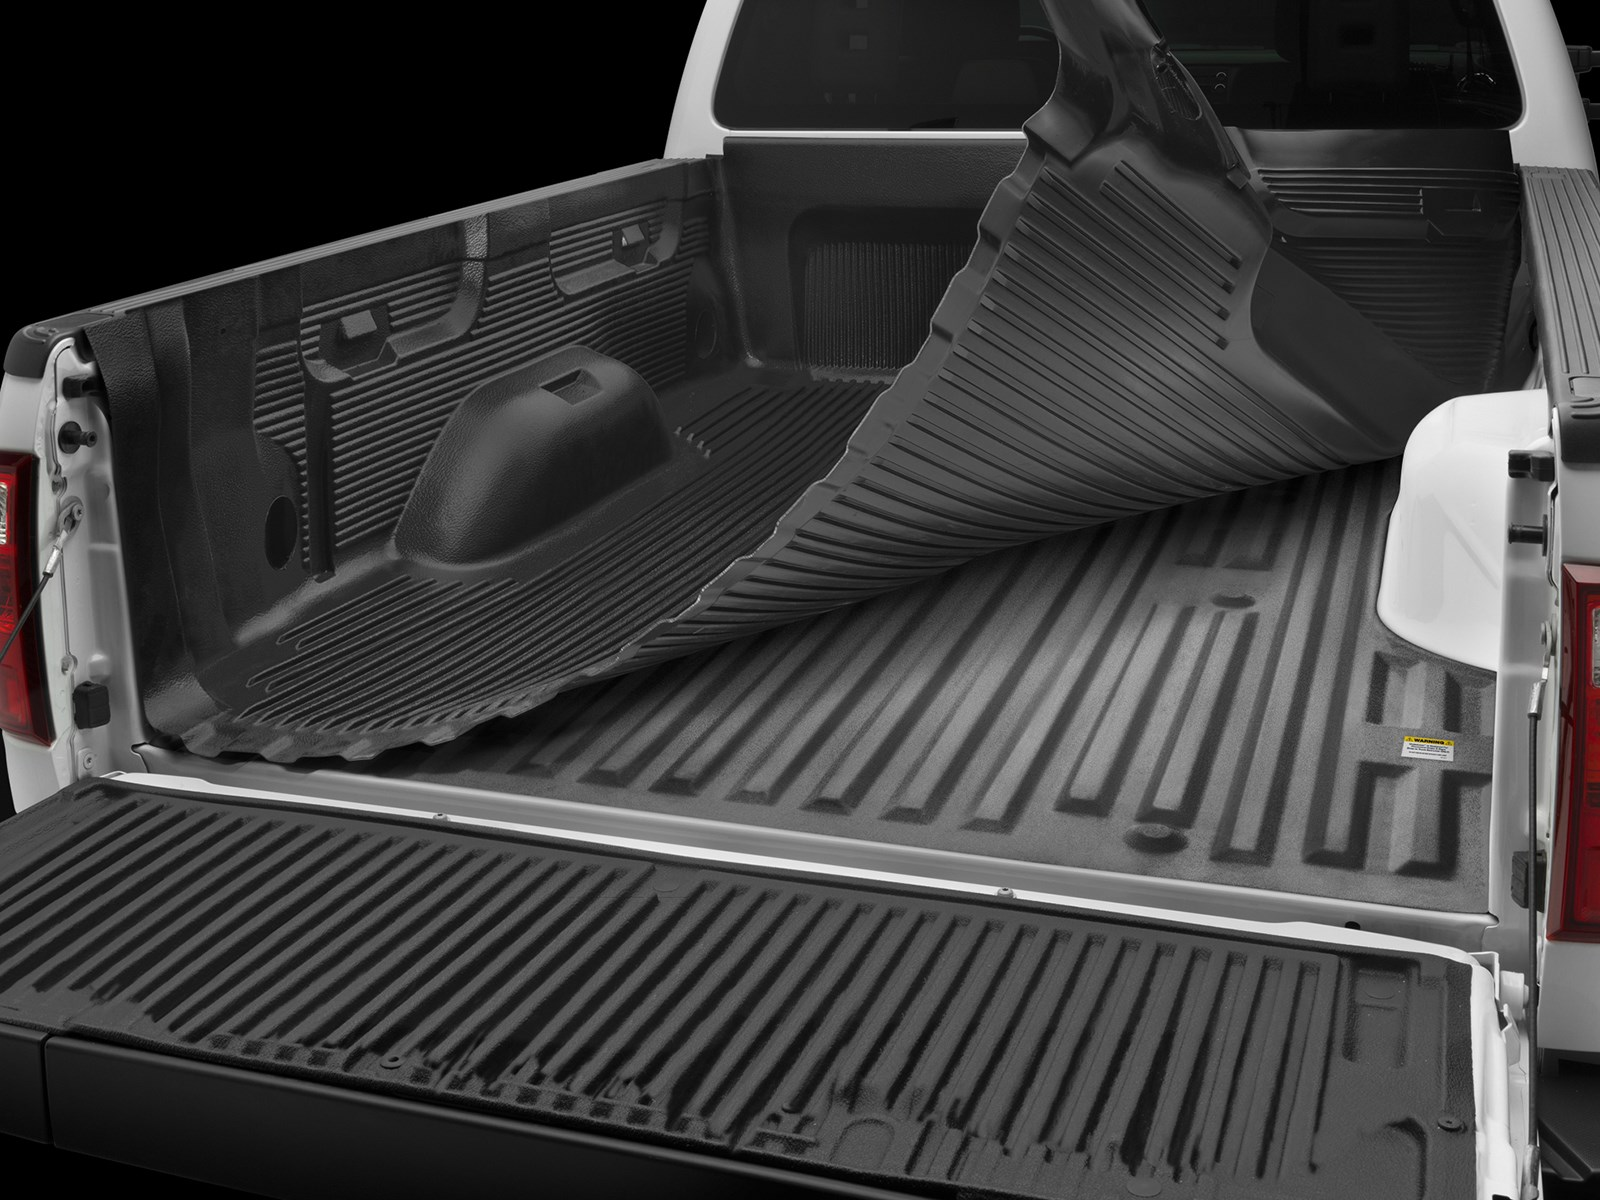 Underliner Bed Liner For Truck Drop In Bedliners